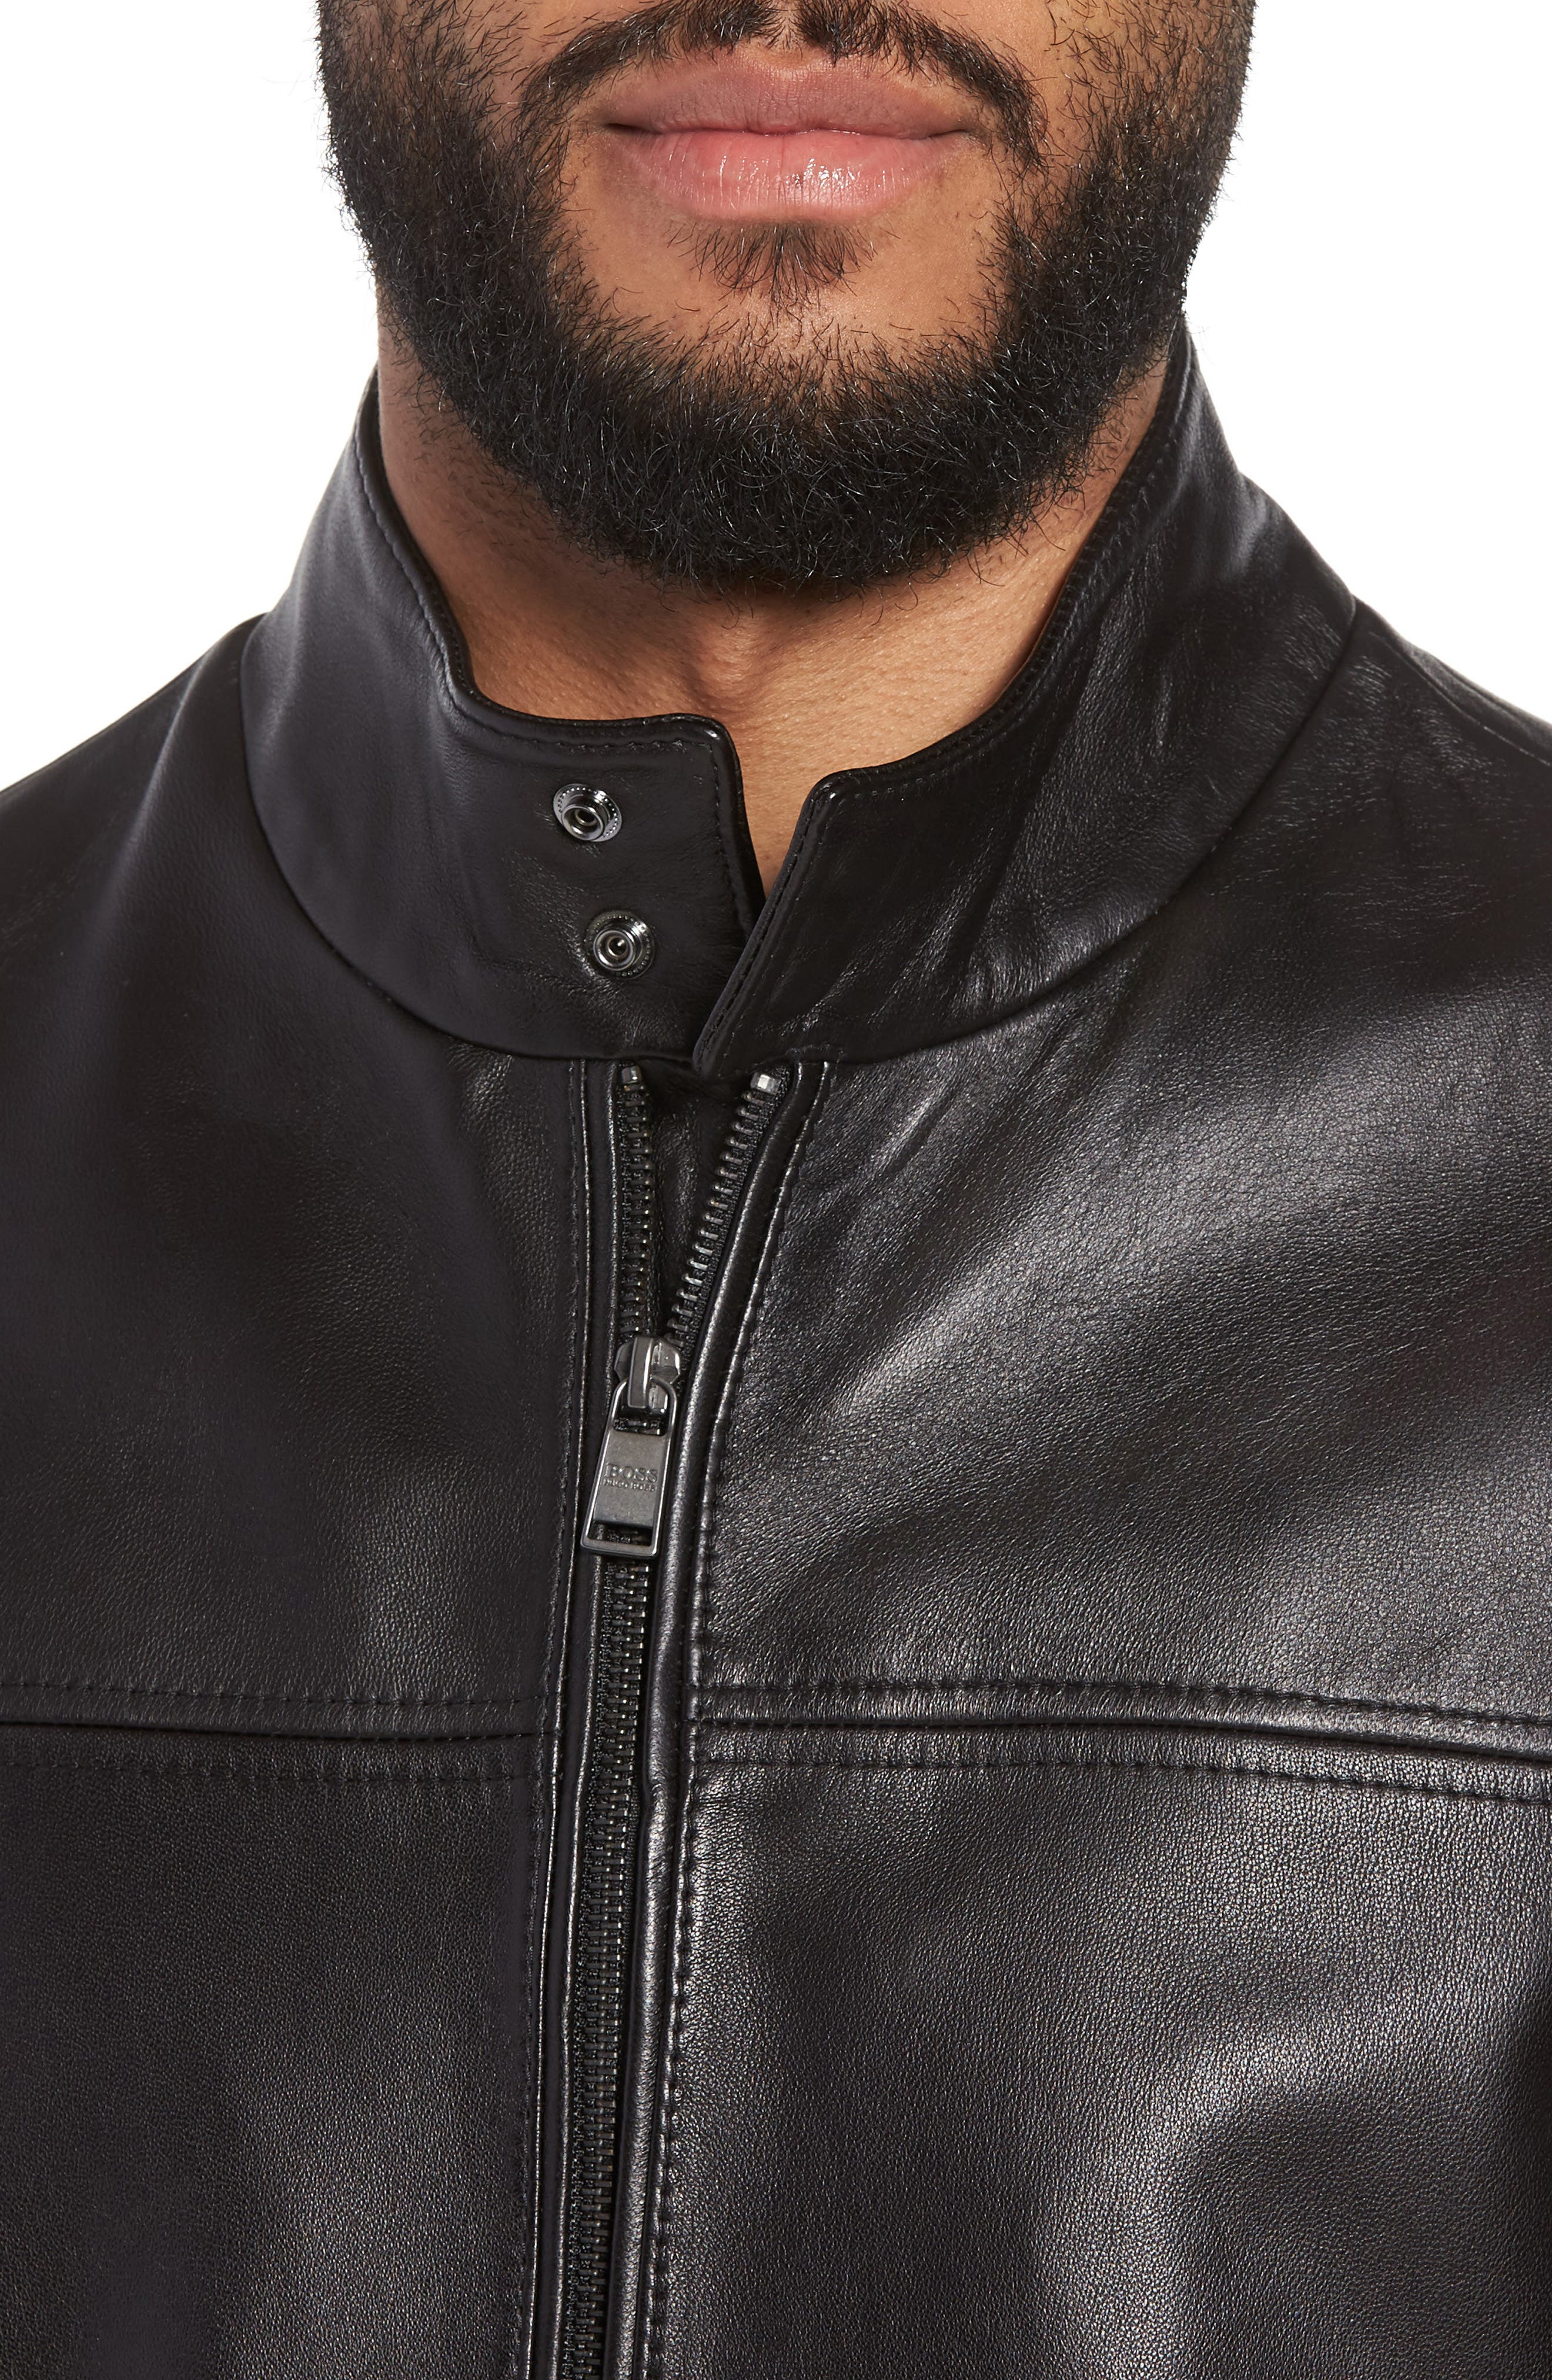 Nerous Leather jacket,                             Alternate thumbnail 4, color,                             Black